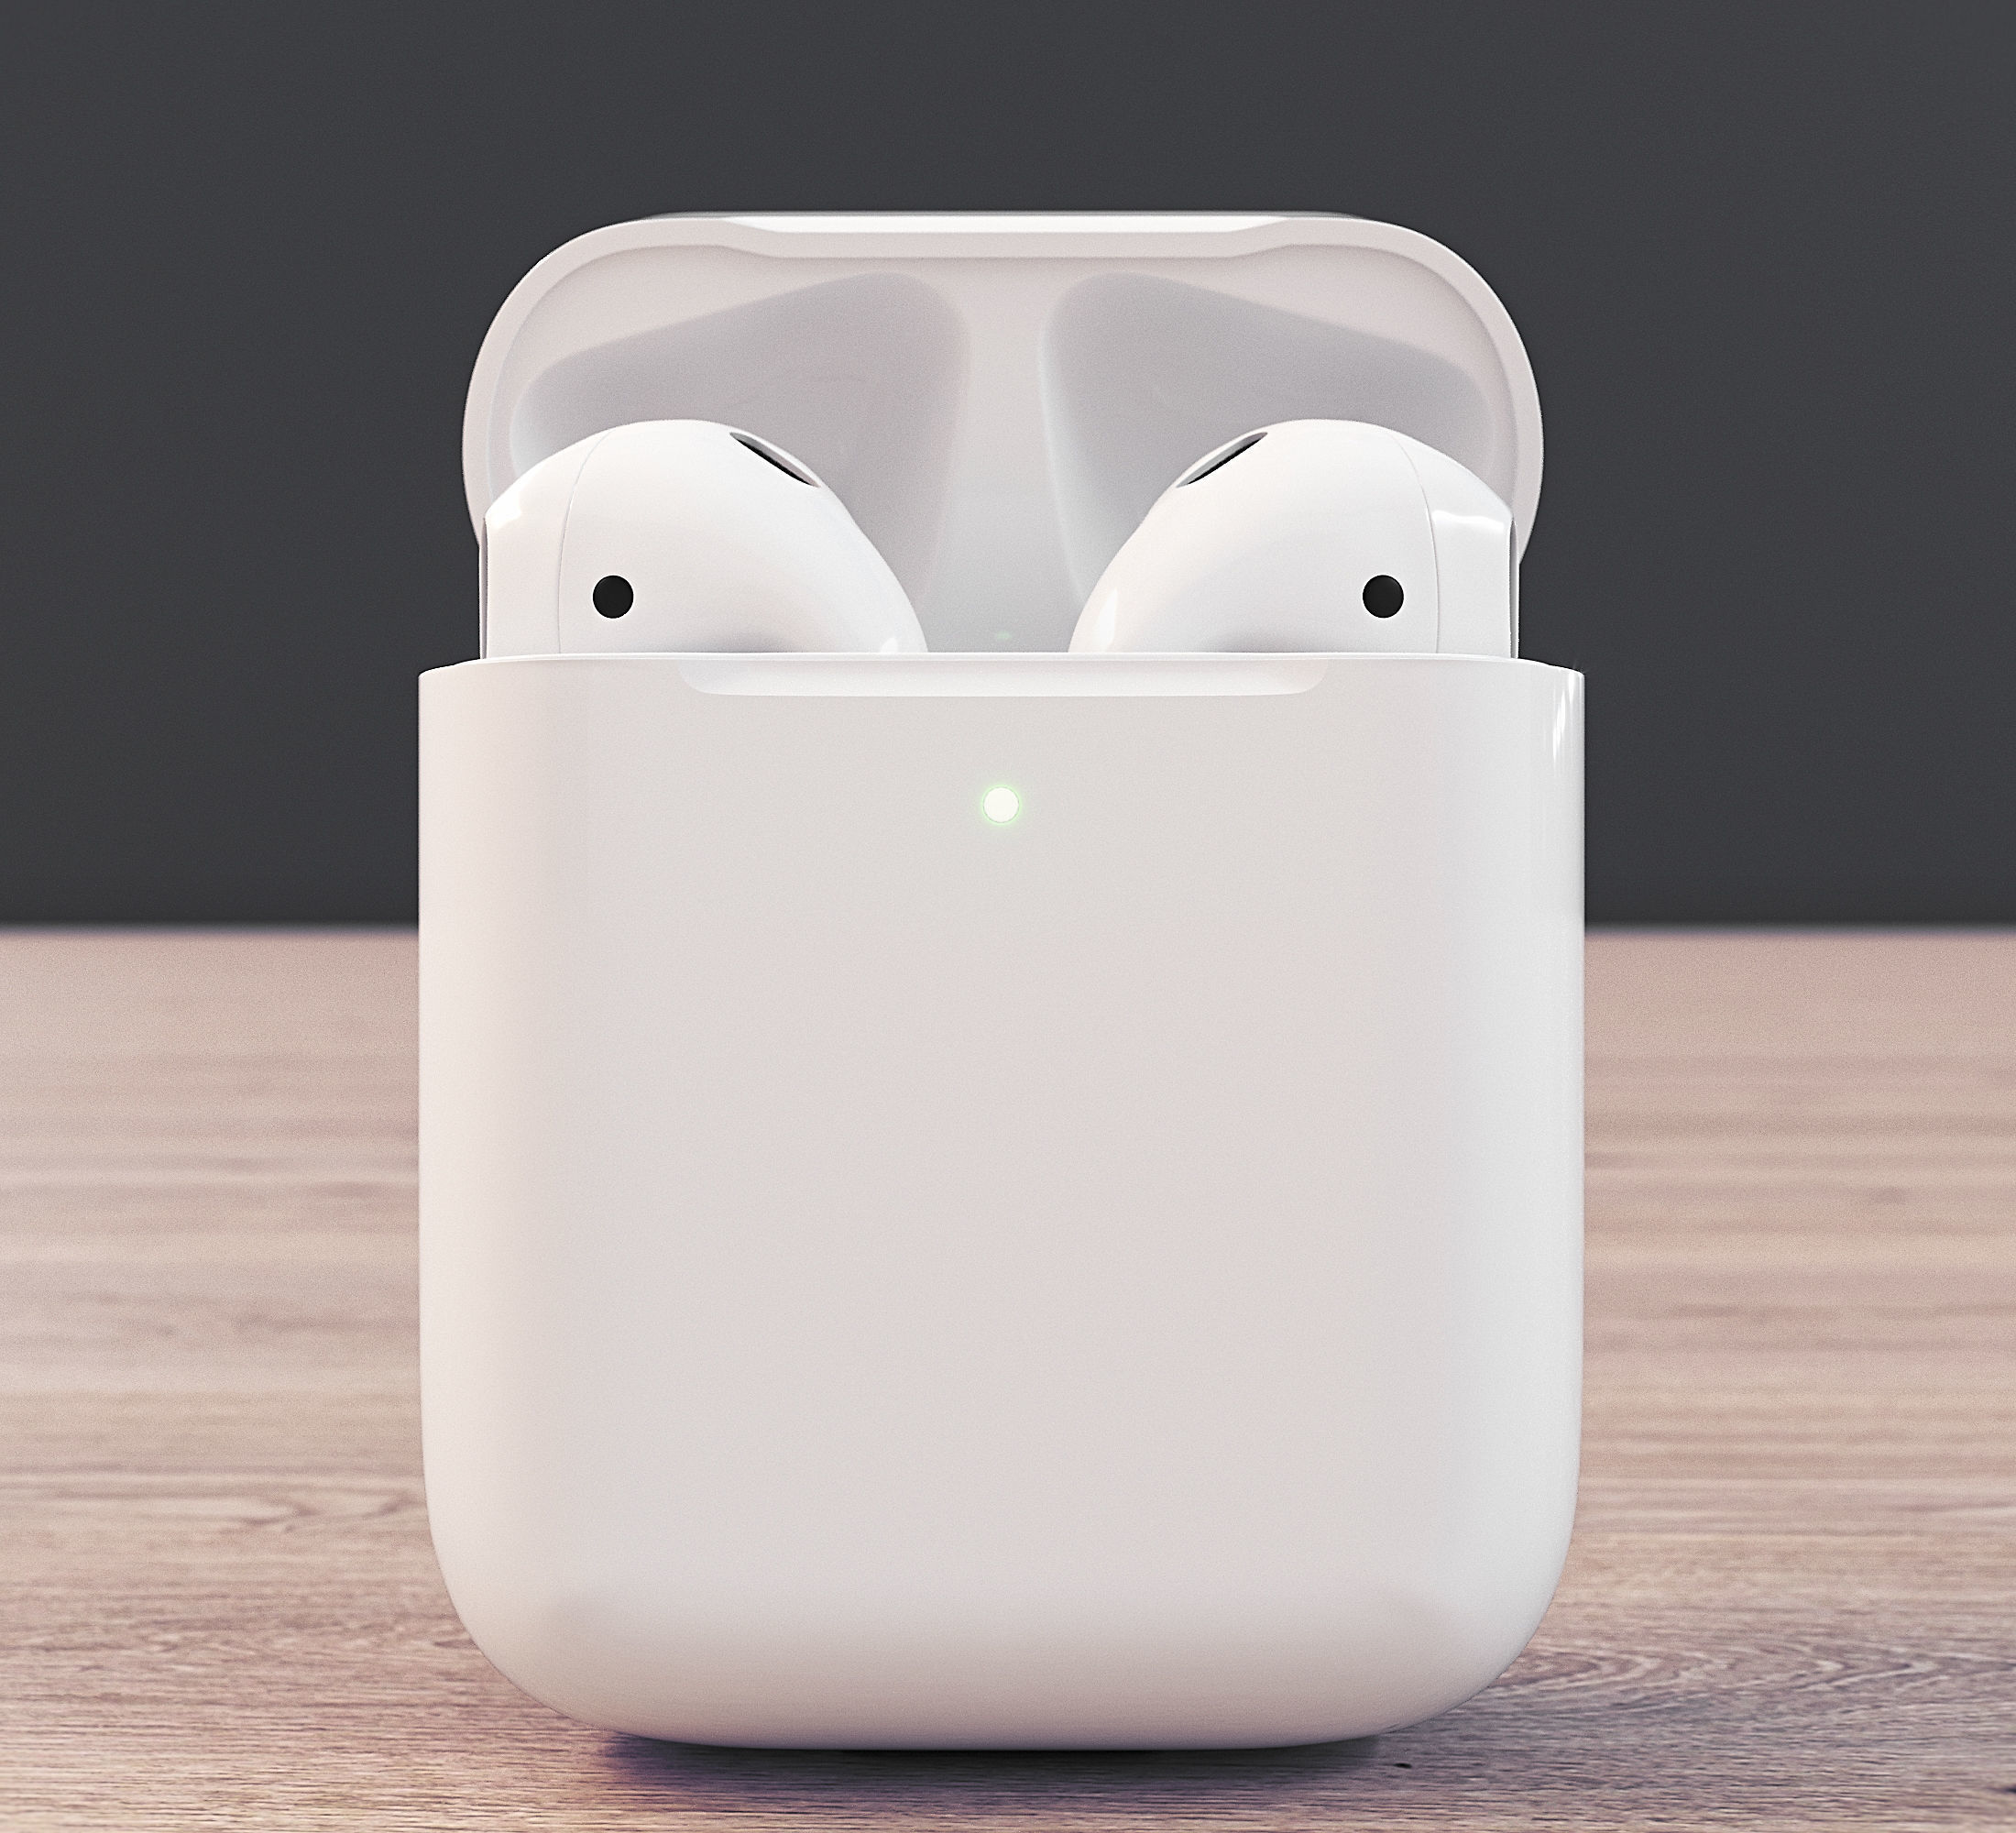 Apple Airpods 2 3d Cgtrader